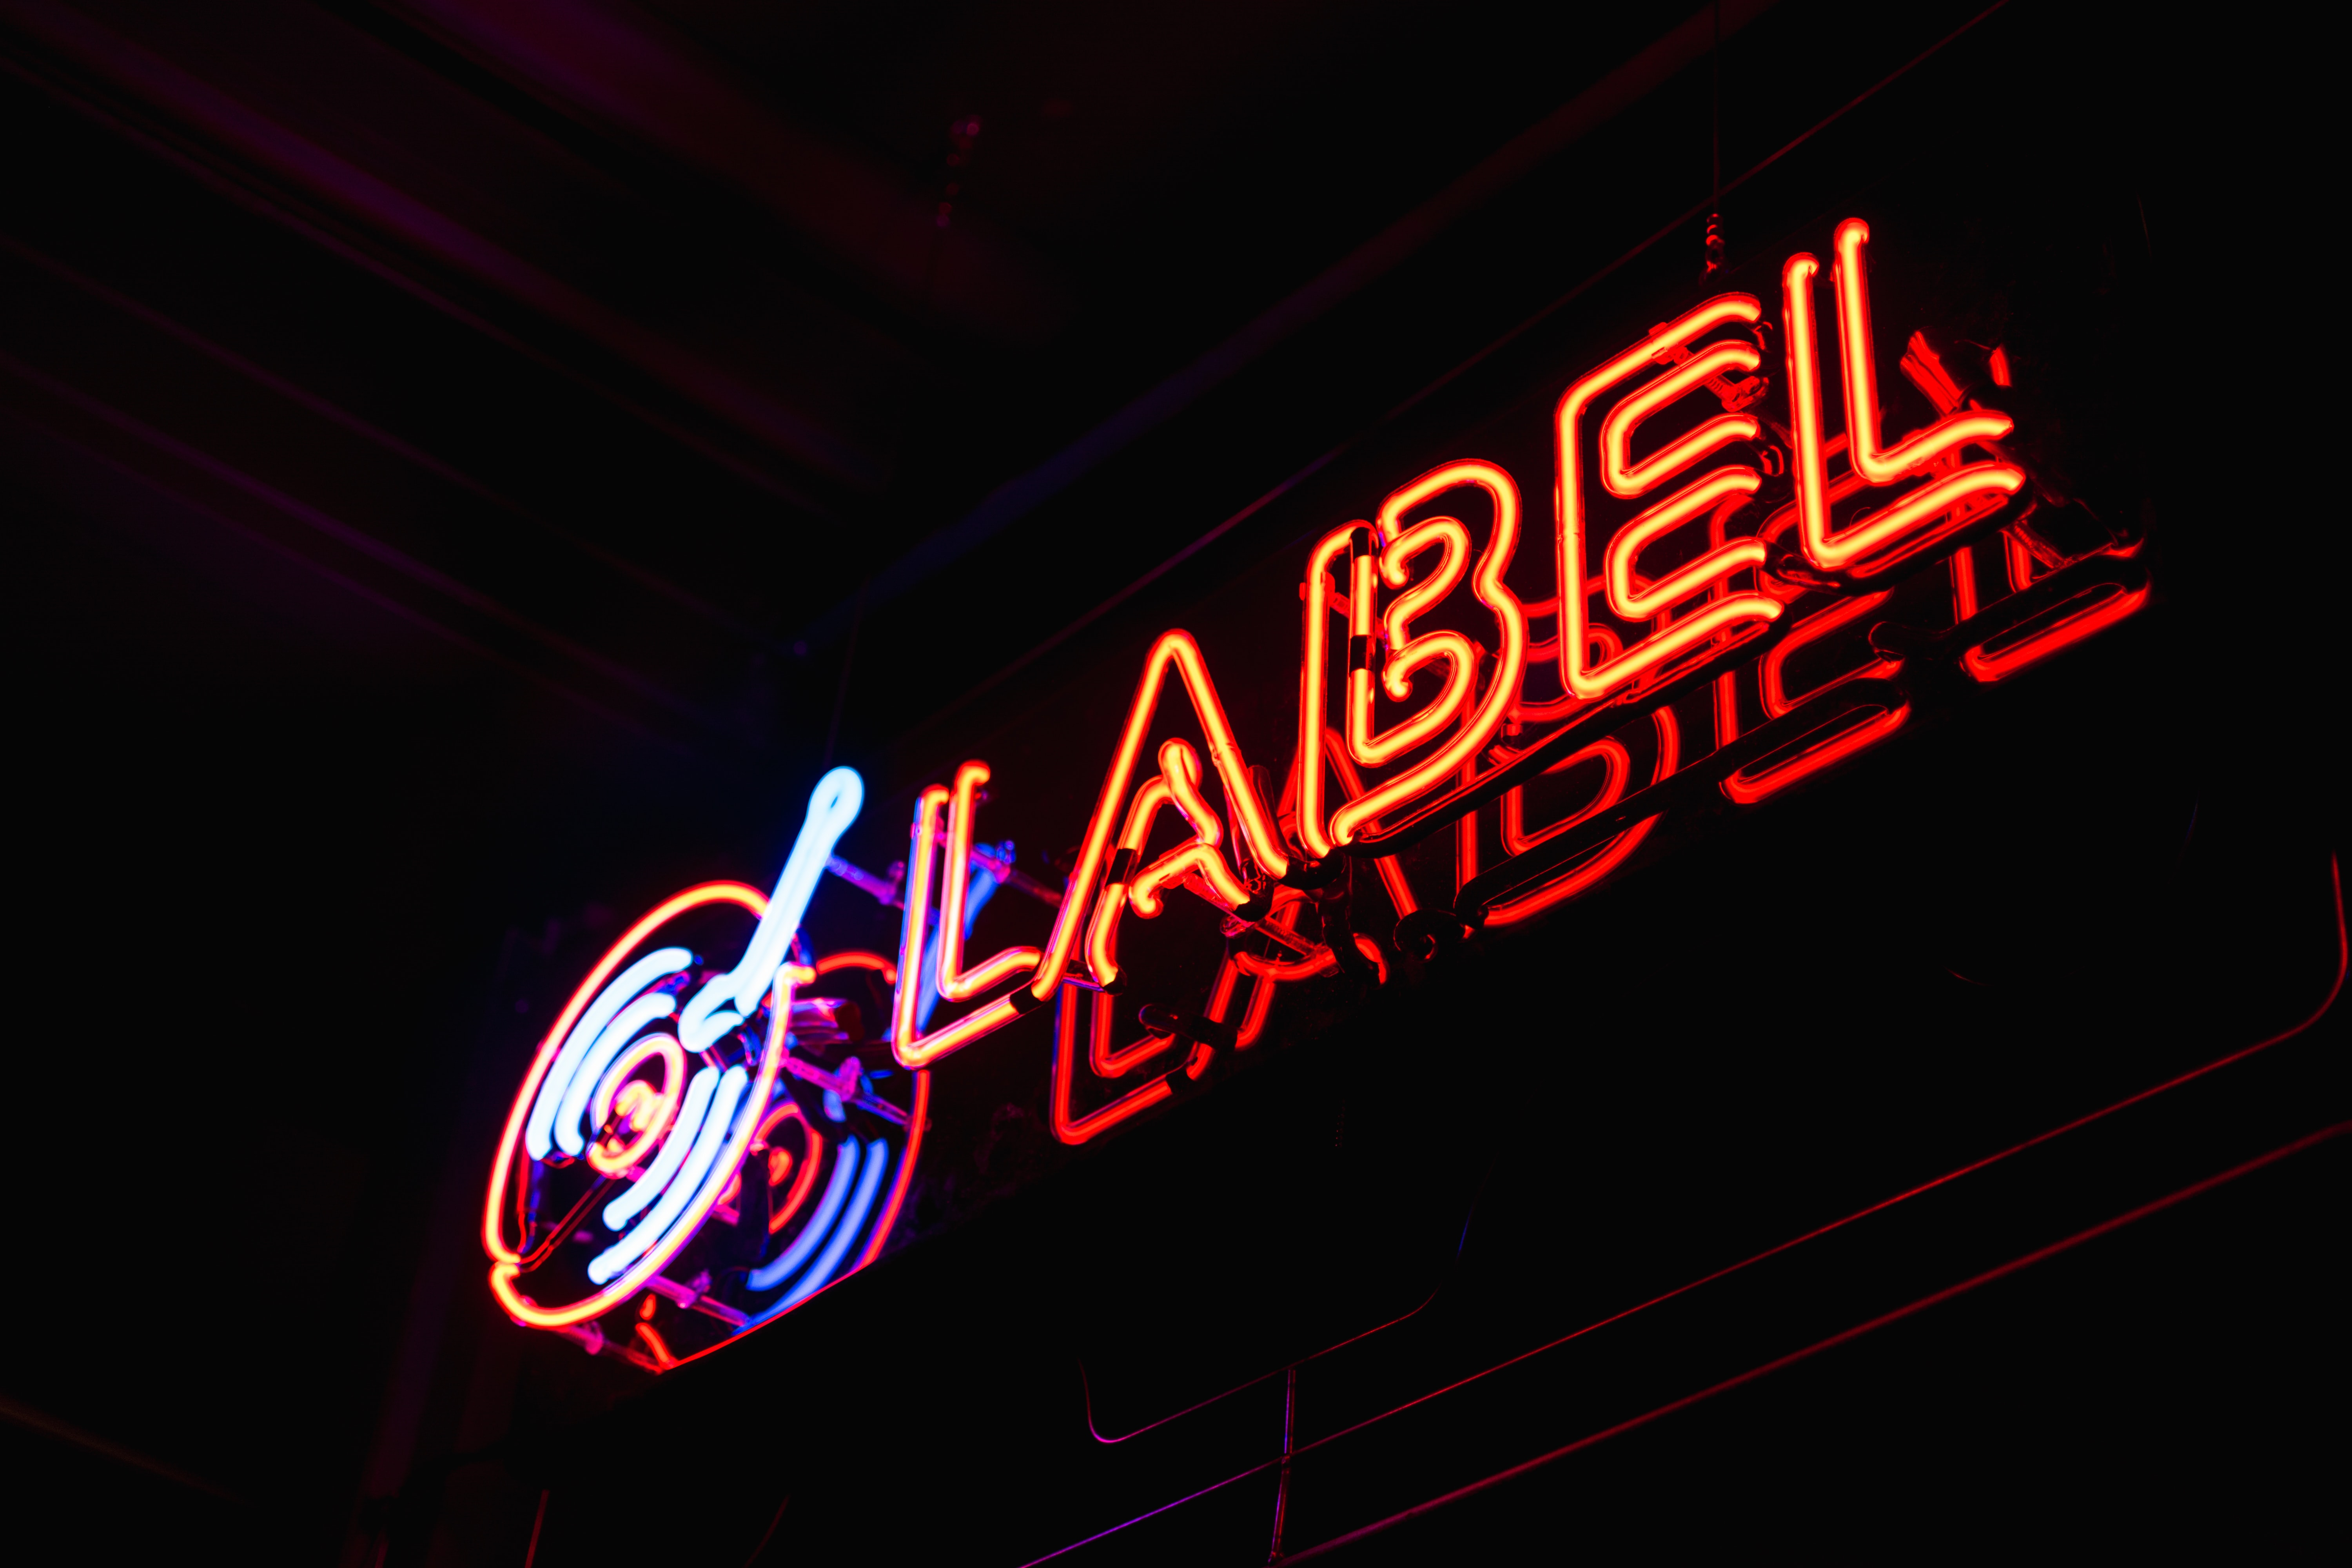 red Label neon light signage